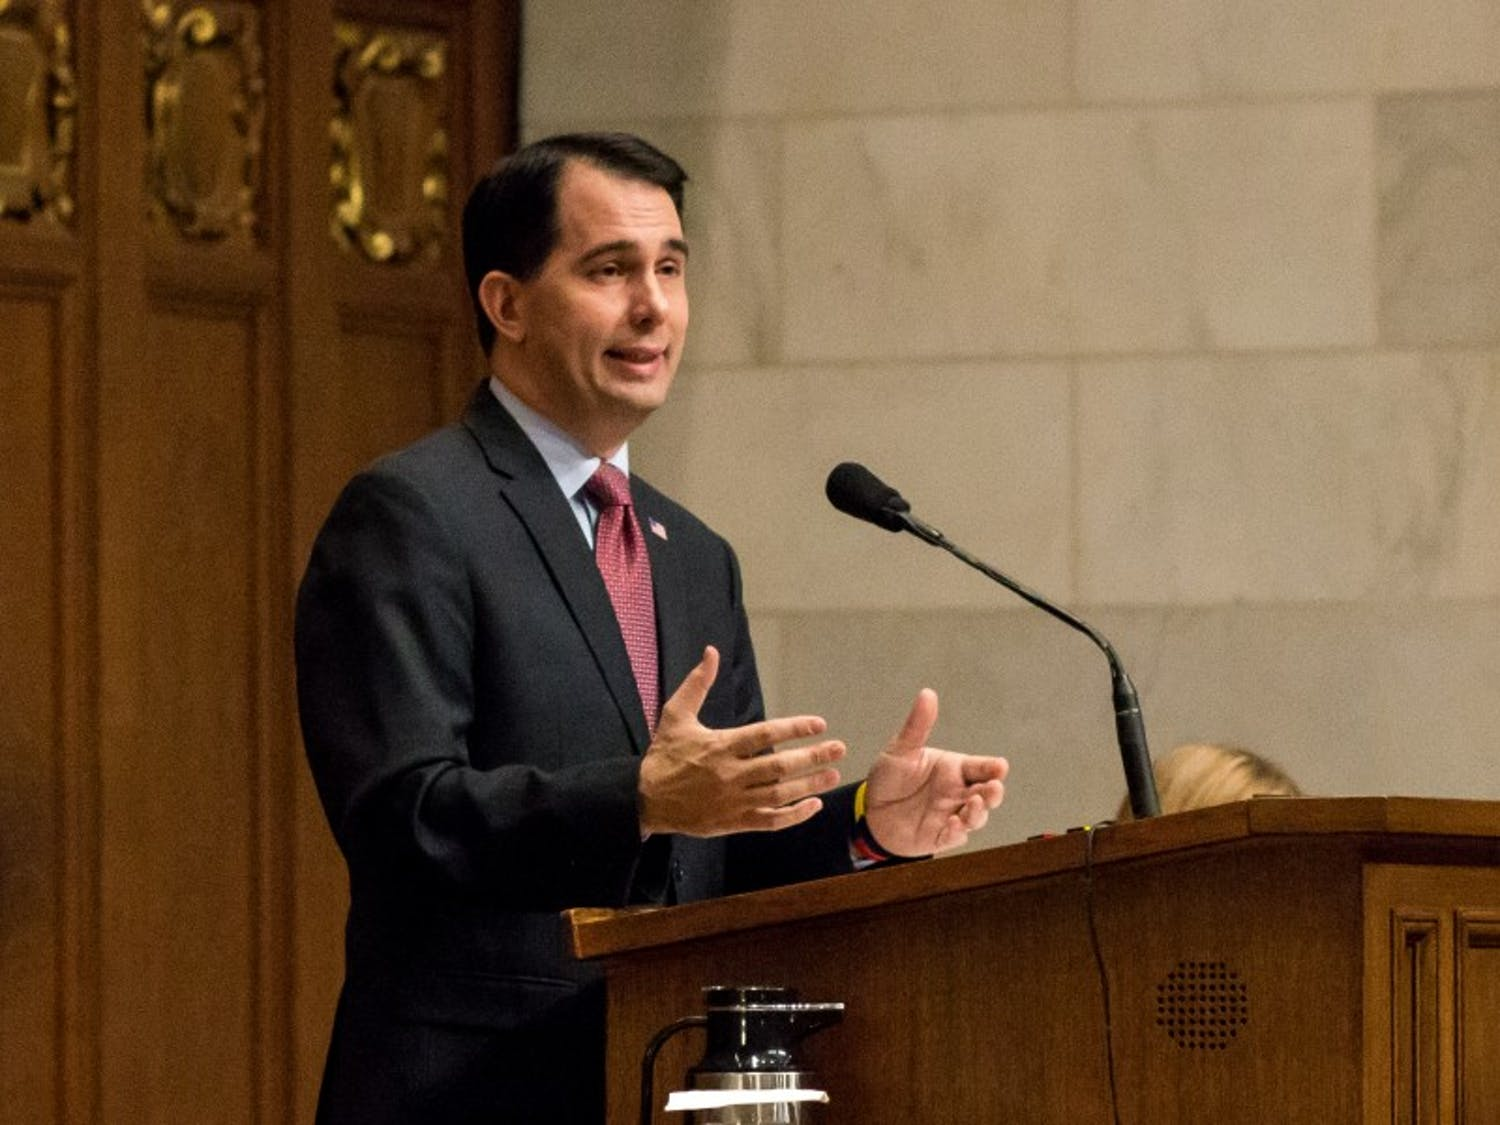 Gov. Scott Walker signed a bill into law Saturday extending the concealed carry law to protect switchblades.